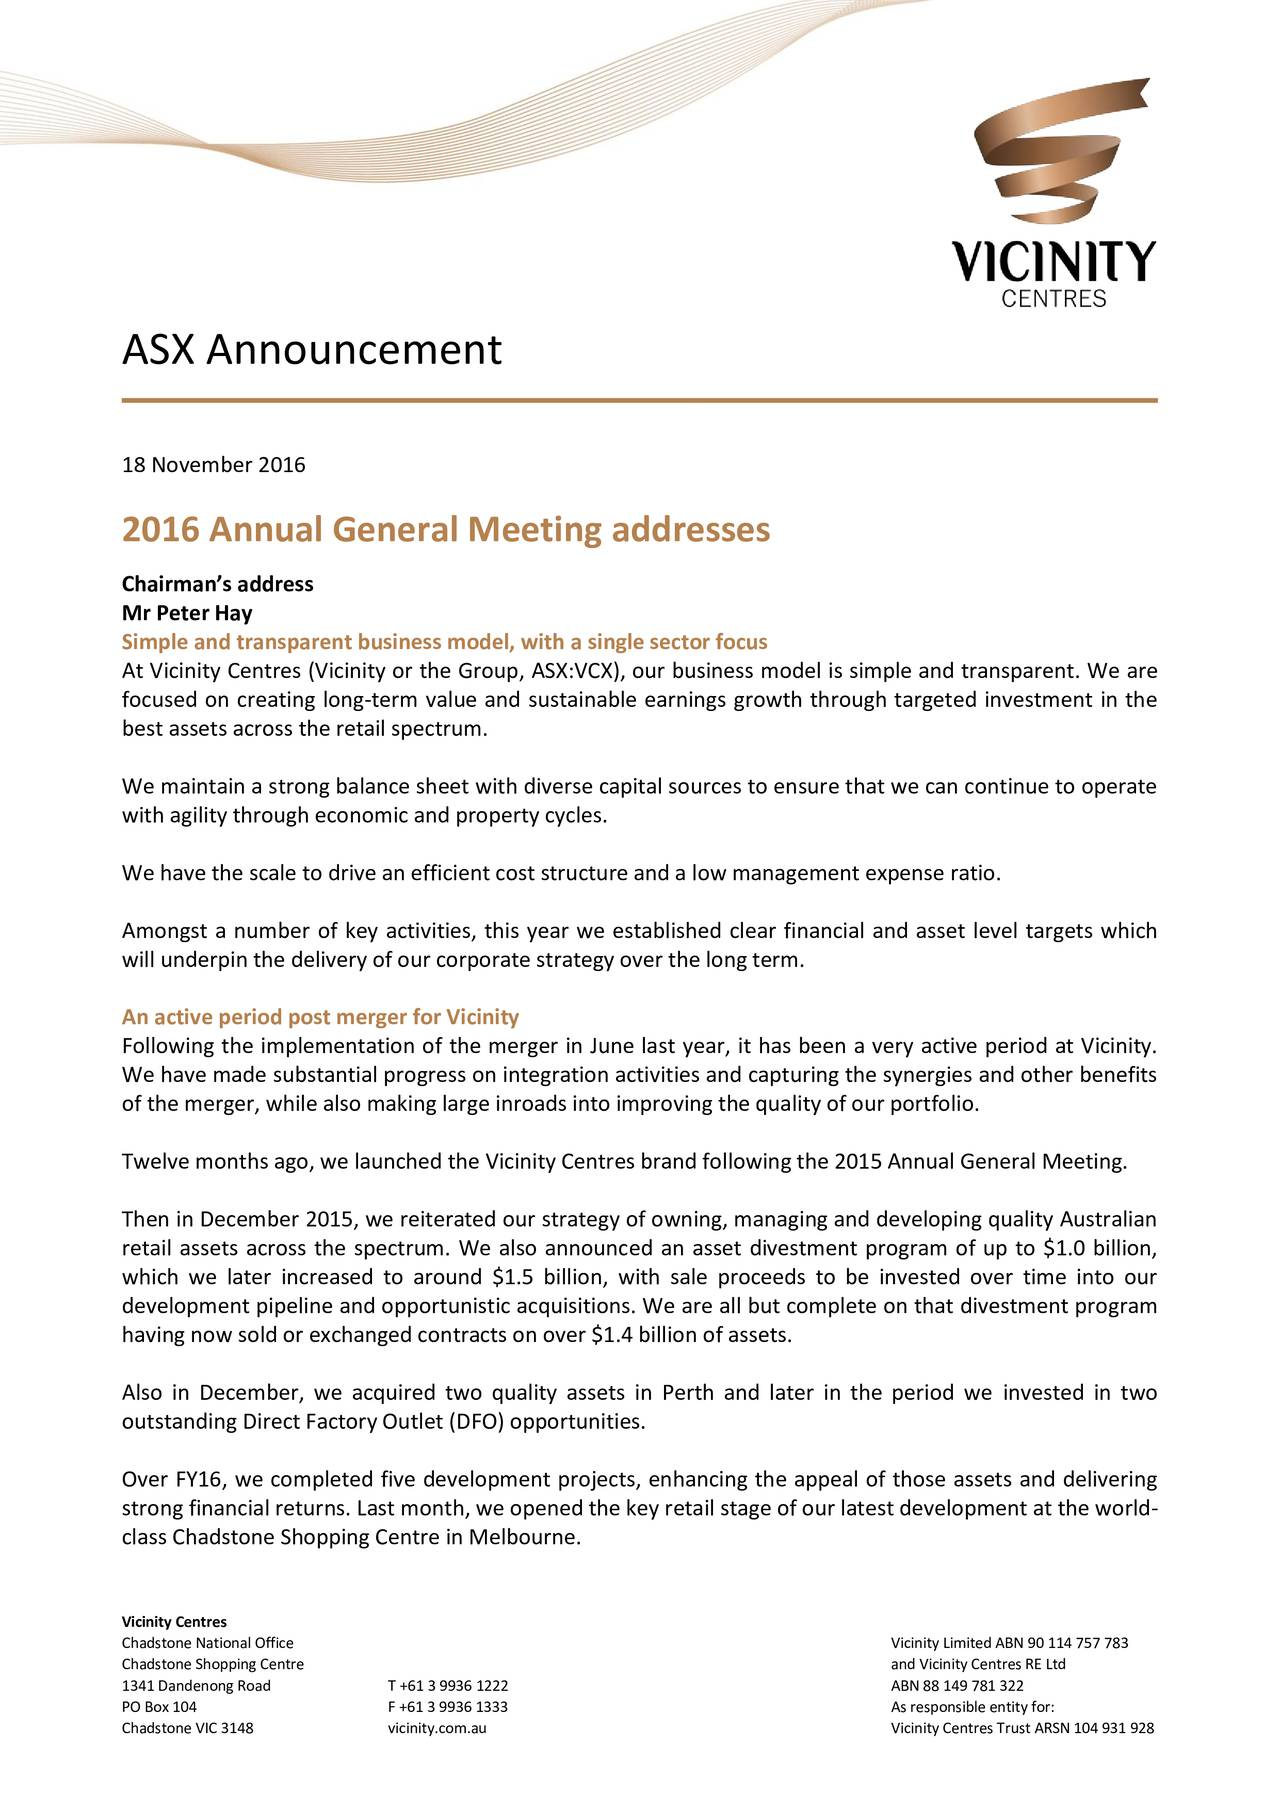 18 November 2016 2016 Annual General Meeting addresses Chairmans address Mr Peter Hay Simple and transparent business model, with a single sector focus At Vicinity Centres (Vicinity or the Group, ASX:VCX), our business model is simple and transparent. We are focused on creating long-term value and sustainable earnings growth through targeted investment in the best assets across the retail spectrum. We maintain a strong balance sheet with diverse capital sources to ensure that we can continue to operate with agility through economic and property cycles. We have the scale to drive an efficient cost structure and a low management expense ratio. Amongst a number of key activities, this year we established clear financial and asset level targets which will underpin the delivery of our corporate strategy over the long term. An active period post merger for Vicinity Following the implementation of the merger in June last year, it has been a very active period at Vicinity. We have made substantial progress on integration activities and capturing the synergies and other benefits of the merger, while also making large inroads into improving the quality of our portfolio. Twelve months ago, we launched the Vicinity Centres brand following the 2015 Annual General Meeting. Then in December 2015, we reiterated our strategy of owning, managing and developing quality Australian retail assets across the spectrum. We also announced an asset divestment program of up to $1.0 billion, which we later increased to around $1.5 billion, with sale proceeds to be invested over time into our development pipeline and opportunistic acquisitions. We are all but complete on that divestment program having now sold or exchanged contracts on over $1.4 billion of assets. Also in December, we acquired two quality assets in Perth and later in the period we invested in two outstanding Direct Factory Outlet (DFO) opportunities. Over FY16, we completed five development projects, enhancing the appeal of thos